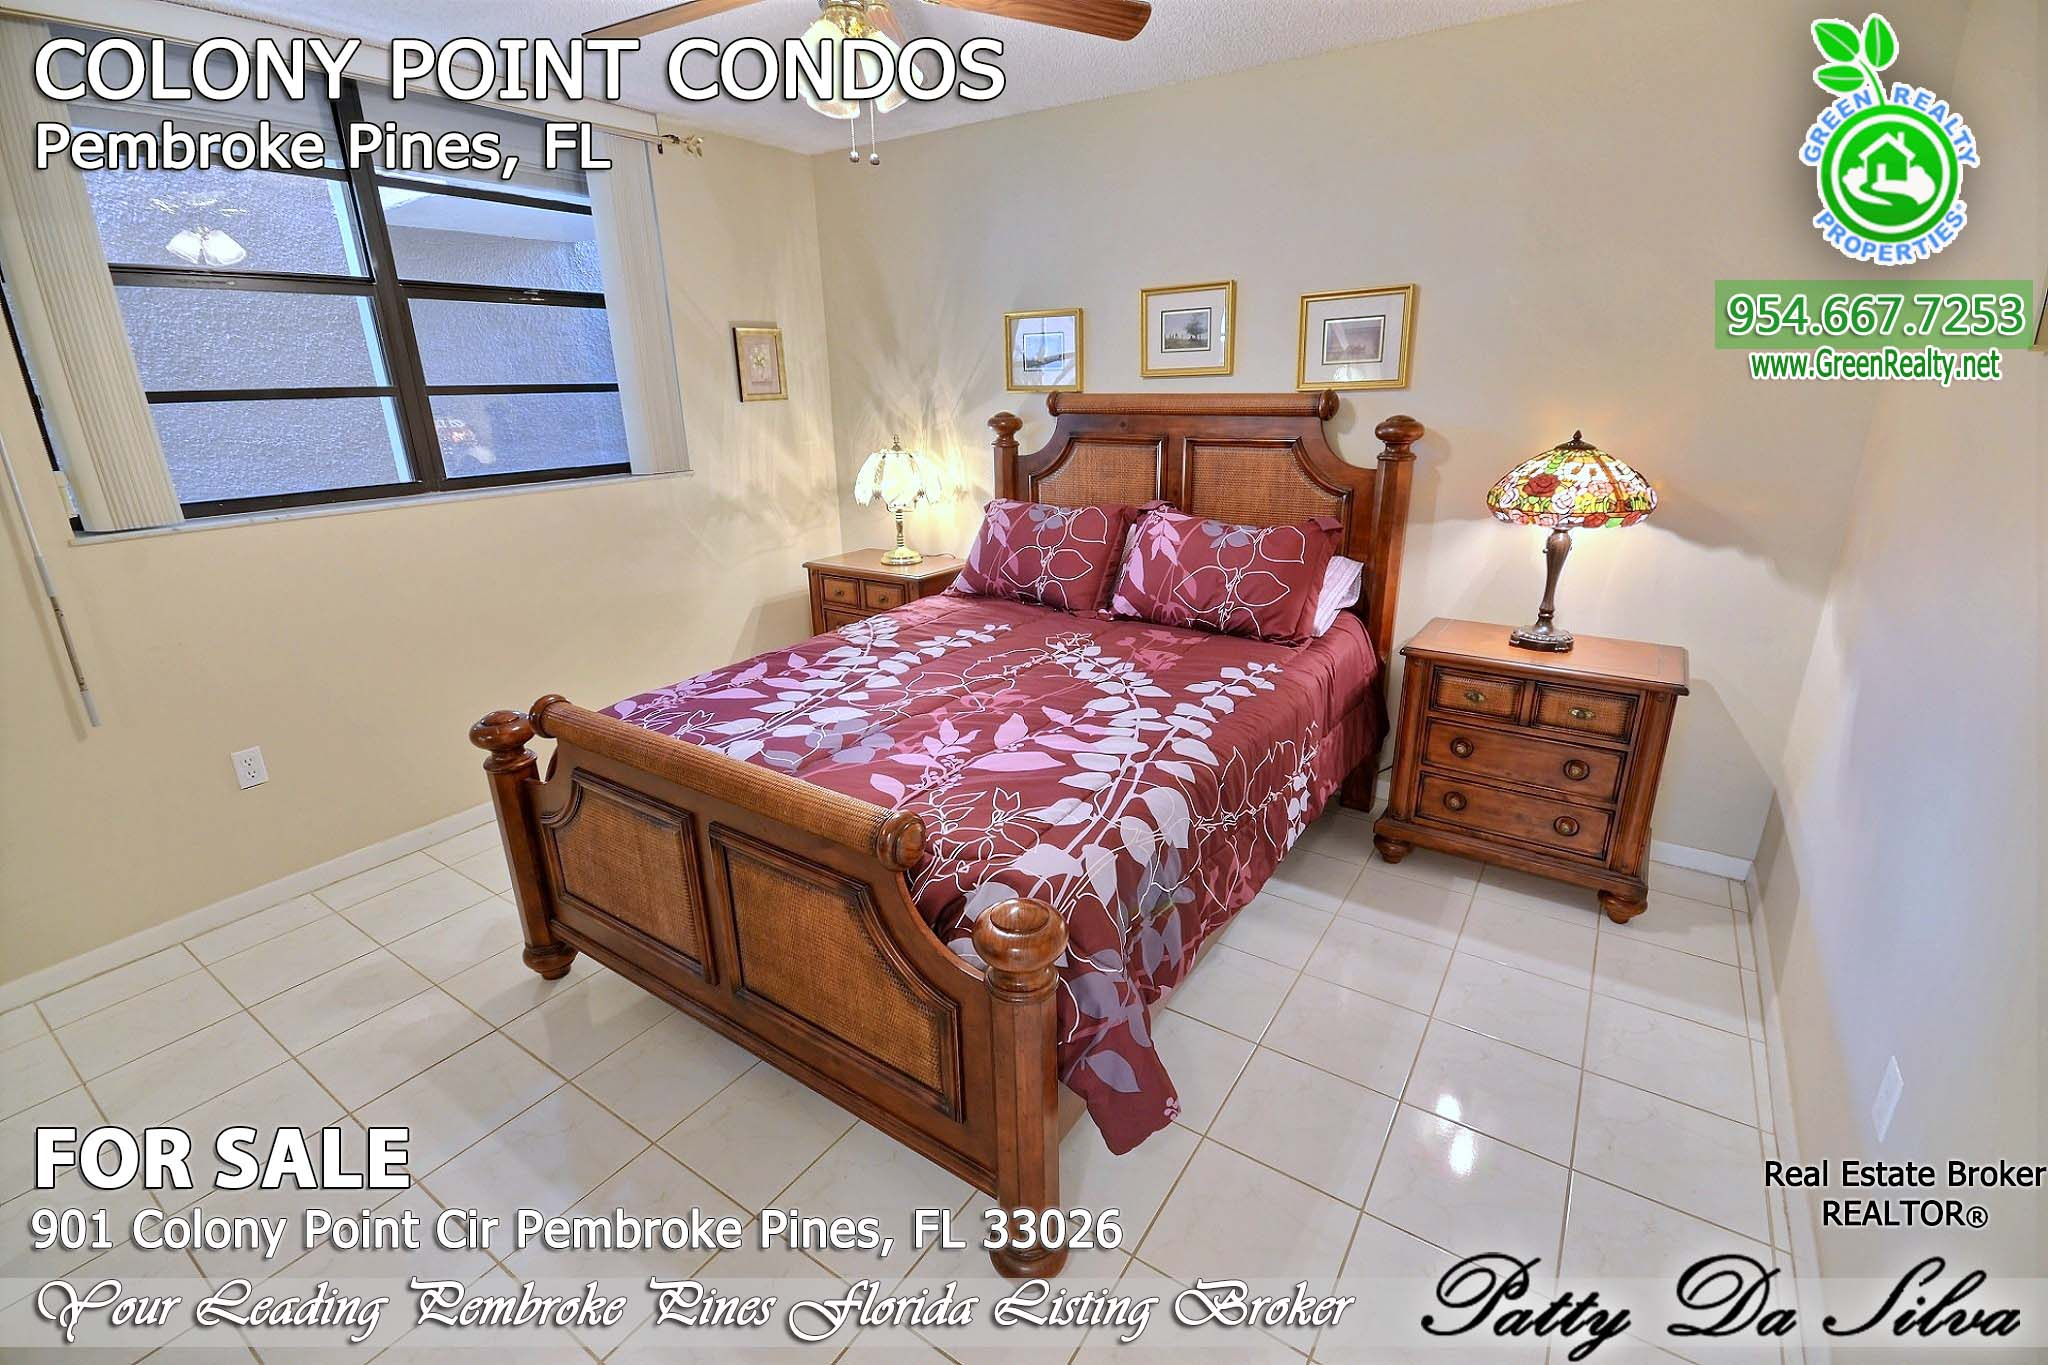 901 Colony Point Cir, Unit 112 - Pembroke Pines Homes For Sale (19)